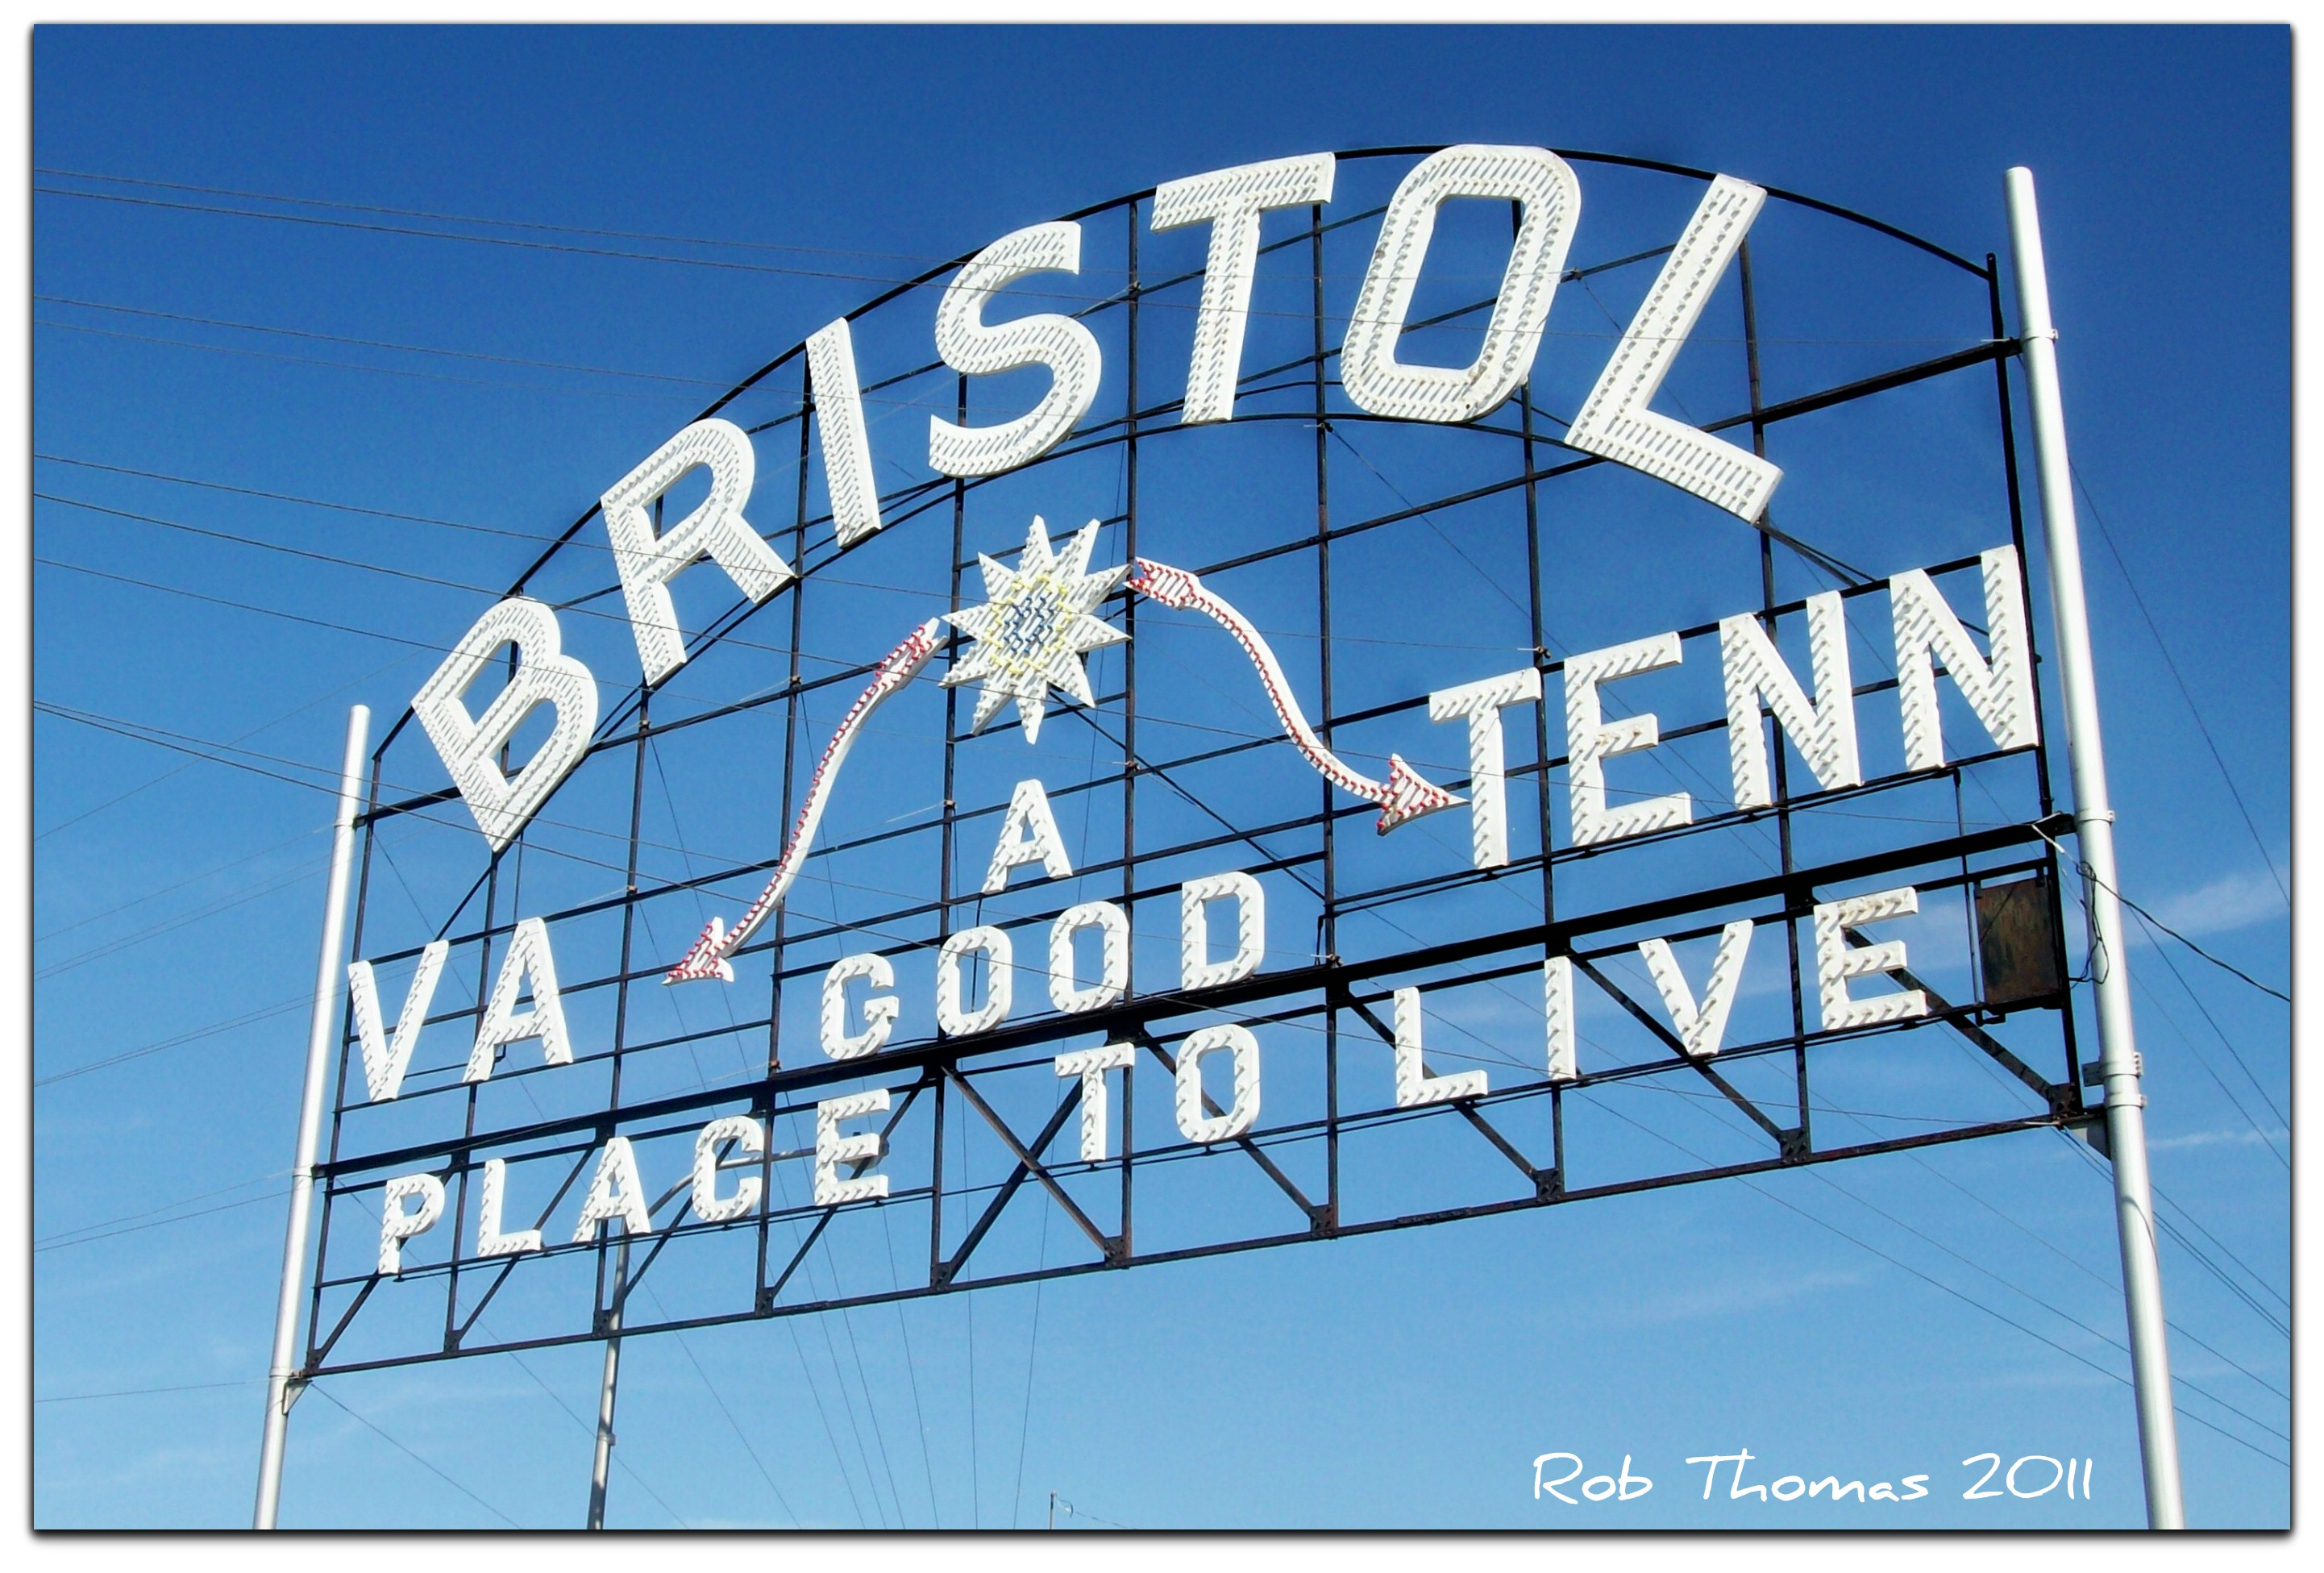 Time in bristol tennessee